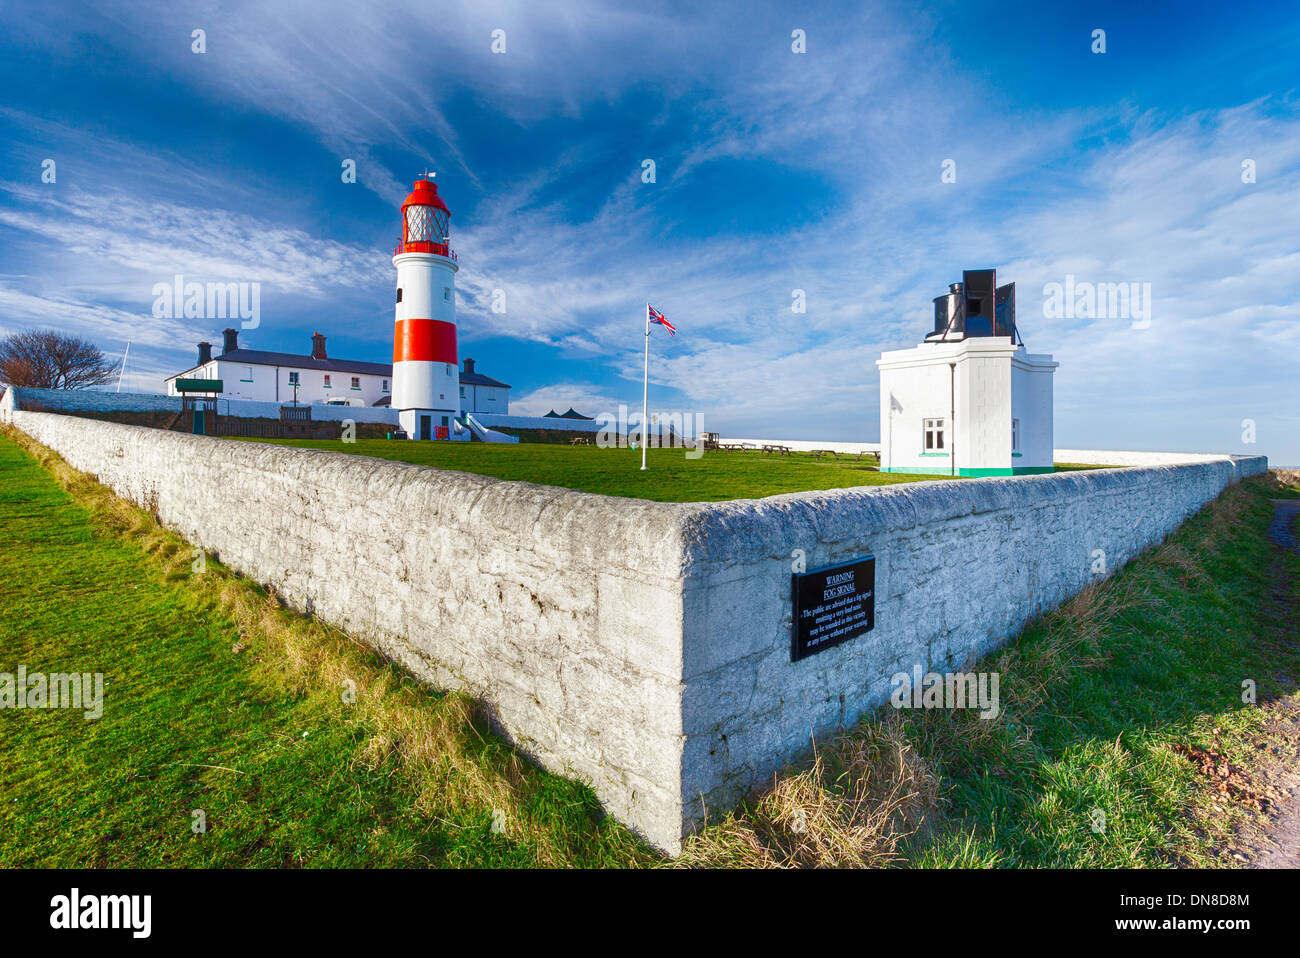 SOUTER LIGHTHOUSE - Stock Image